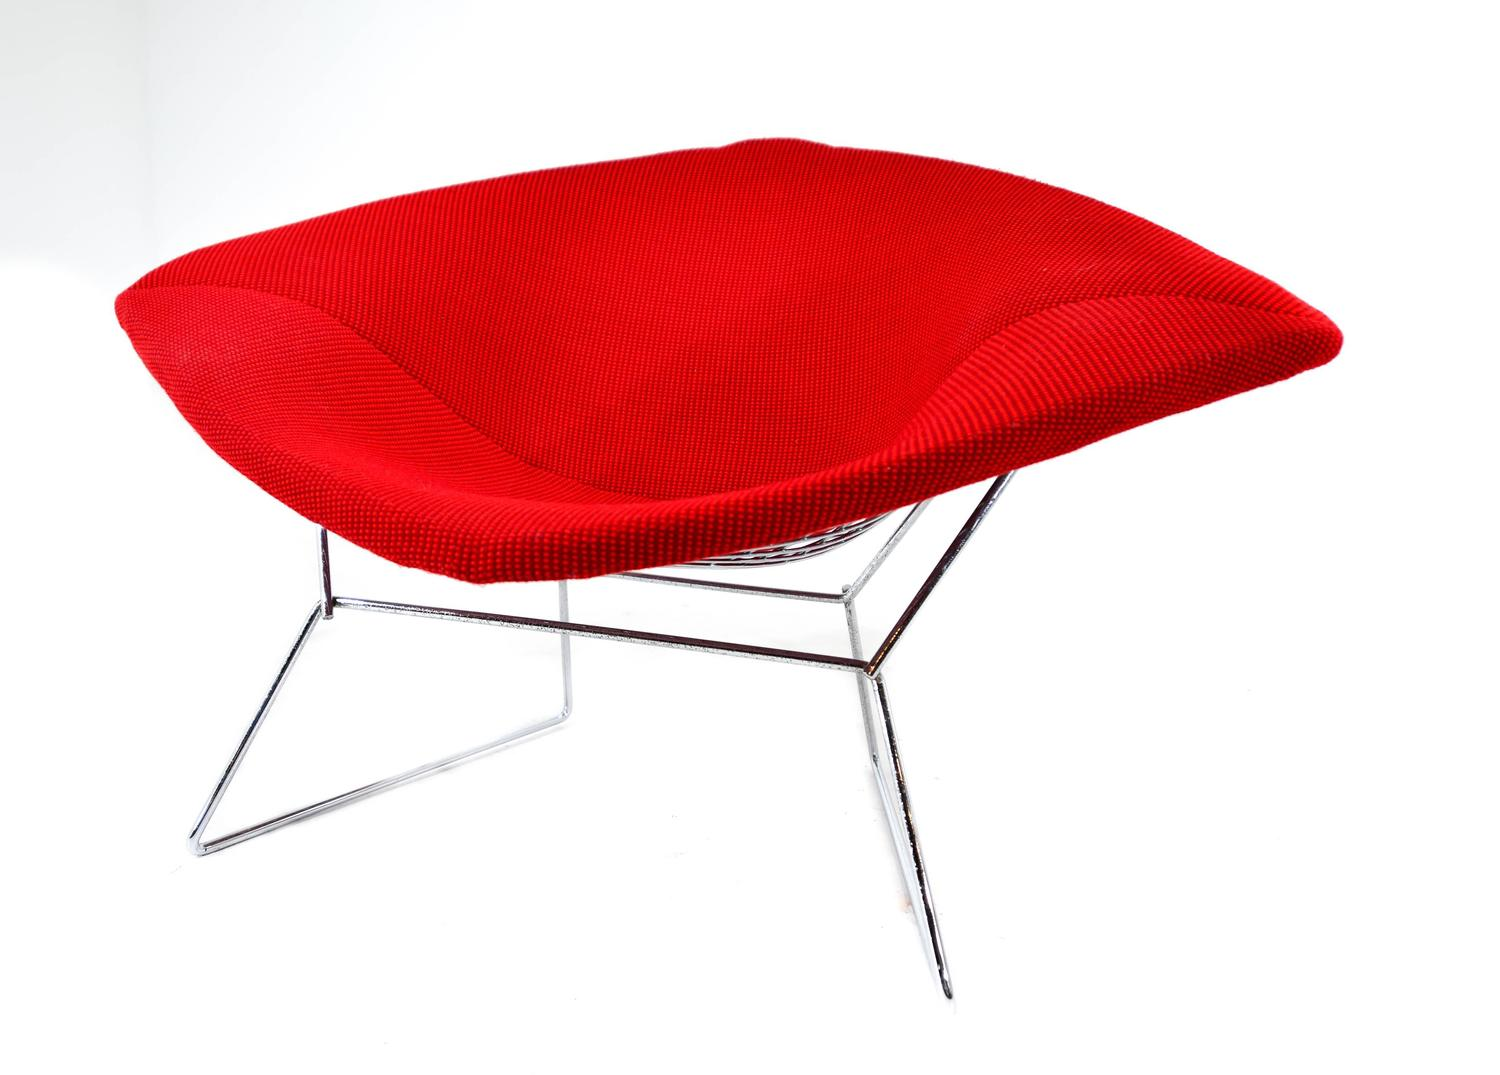 harry bertoia wide diamond chair at 1stdibs. Black Bedroom Furniture Sets. Home Design Ideas